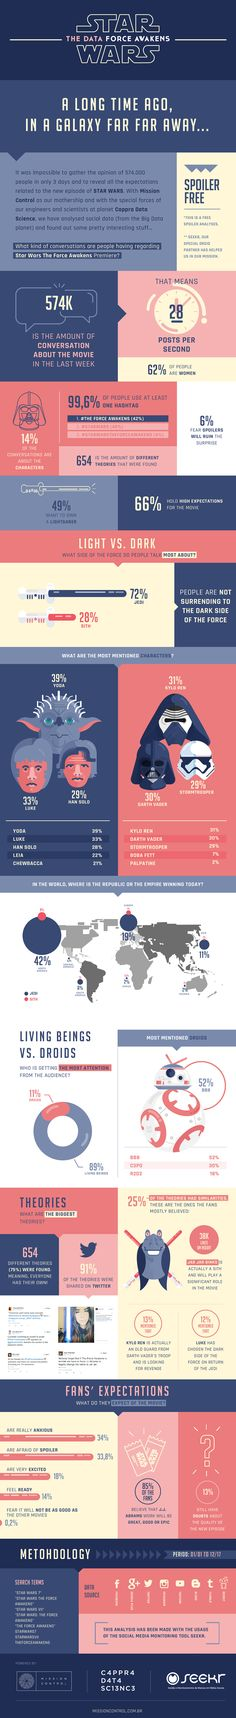 Star Wars: The Force Awakens | Infographic on Behance